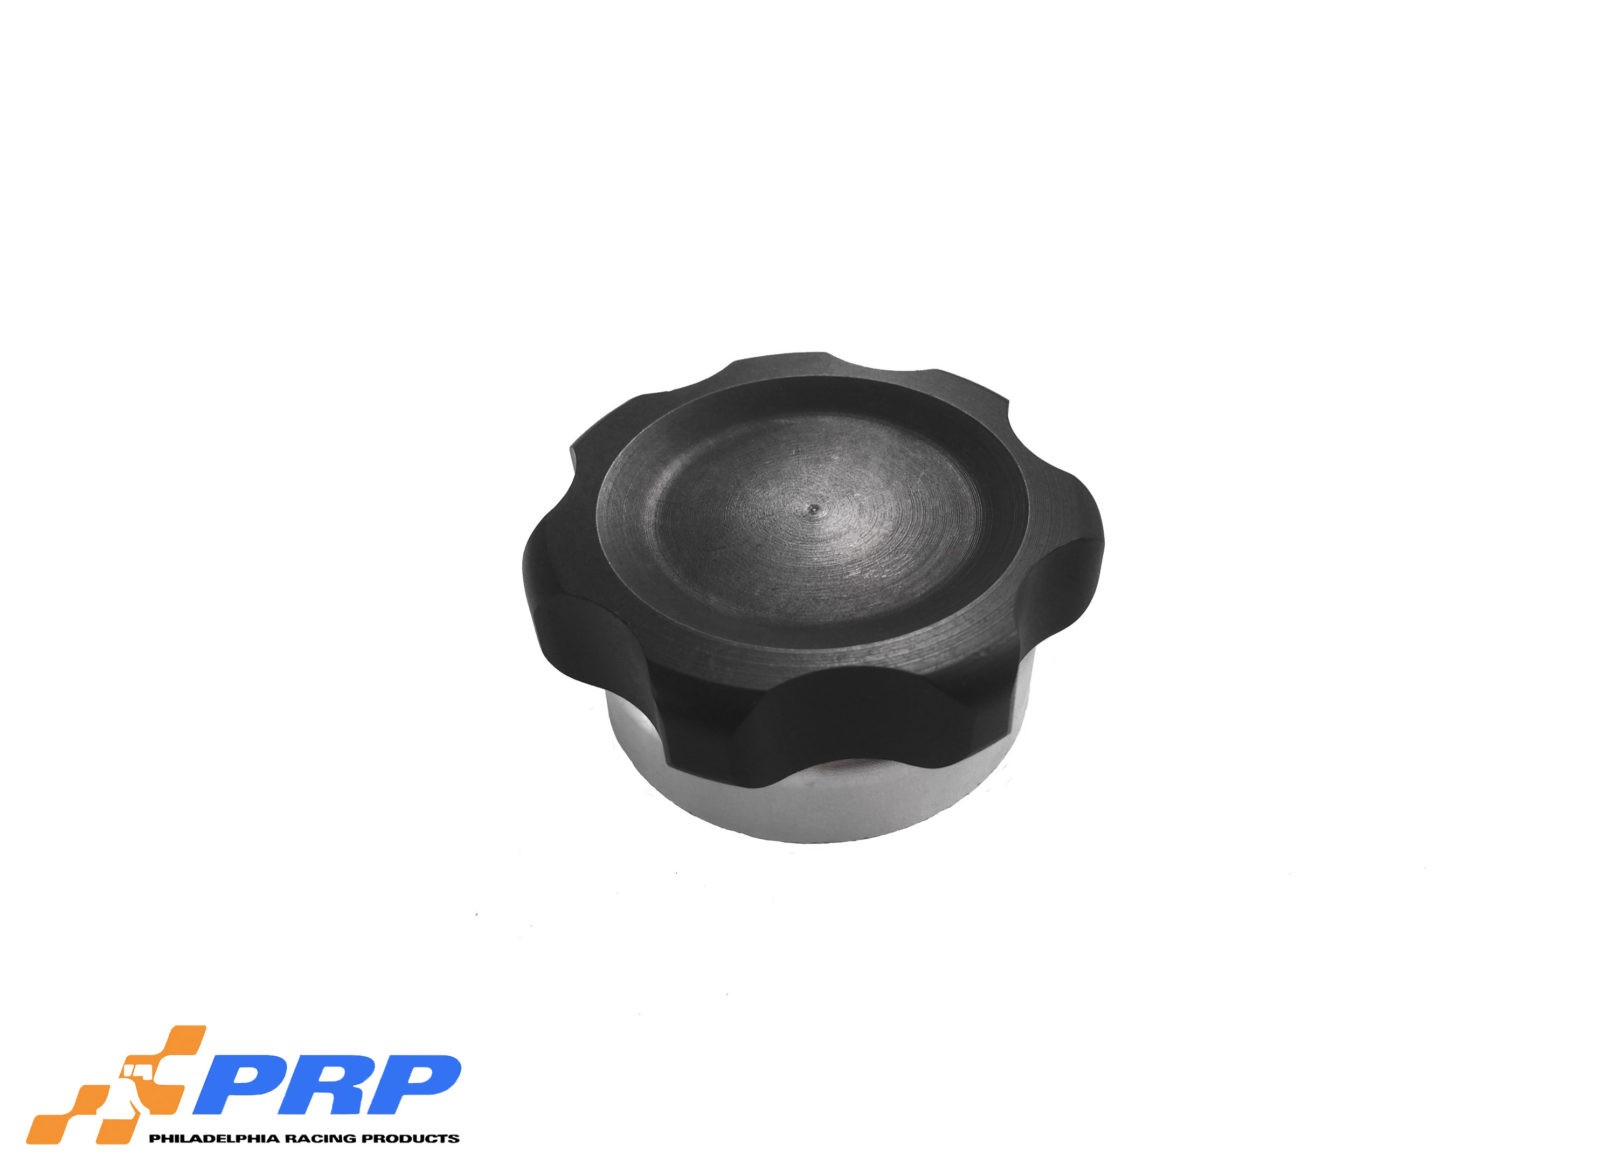 Black Anodized small Billet Filler Cap Kit made by PRP Racing Products